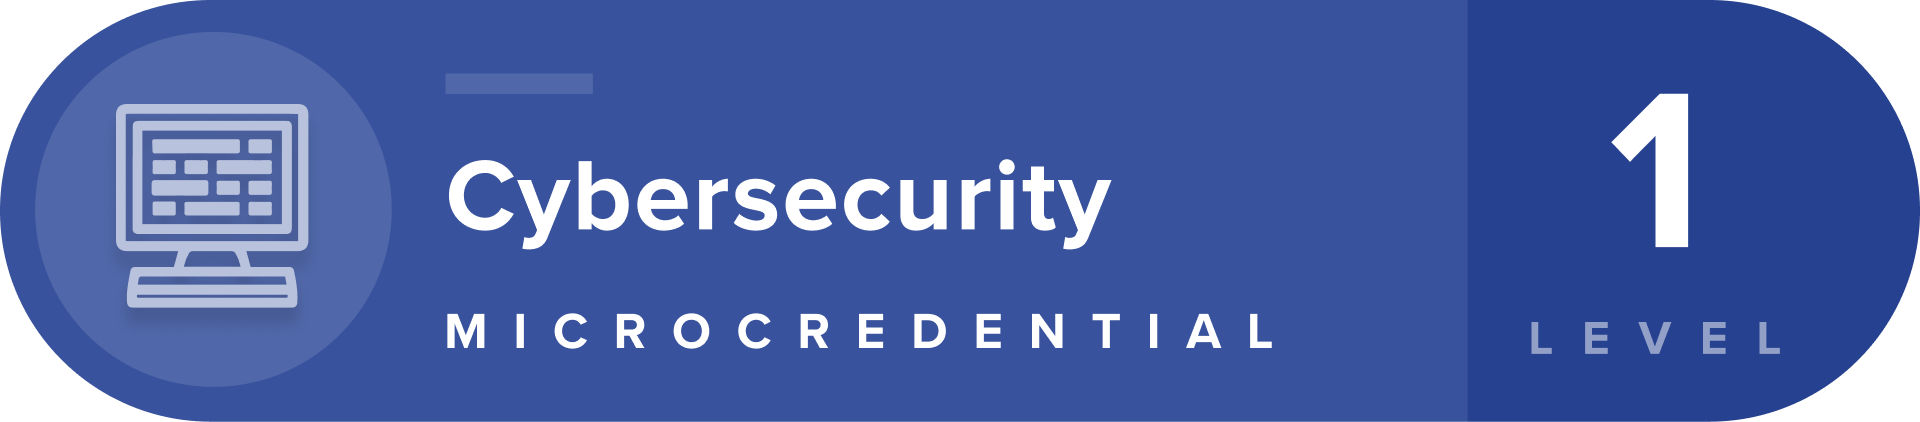 Cybersecurity microcredentials level 1 badge